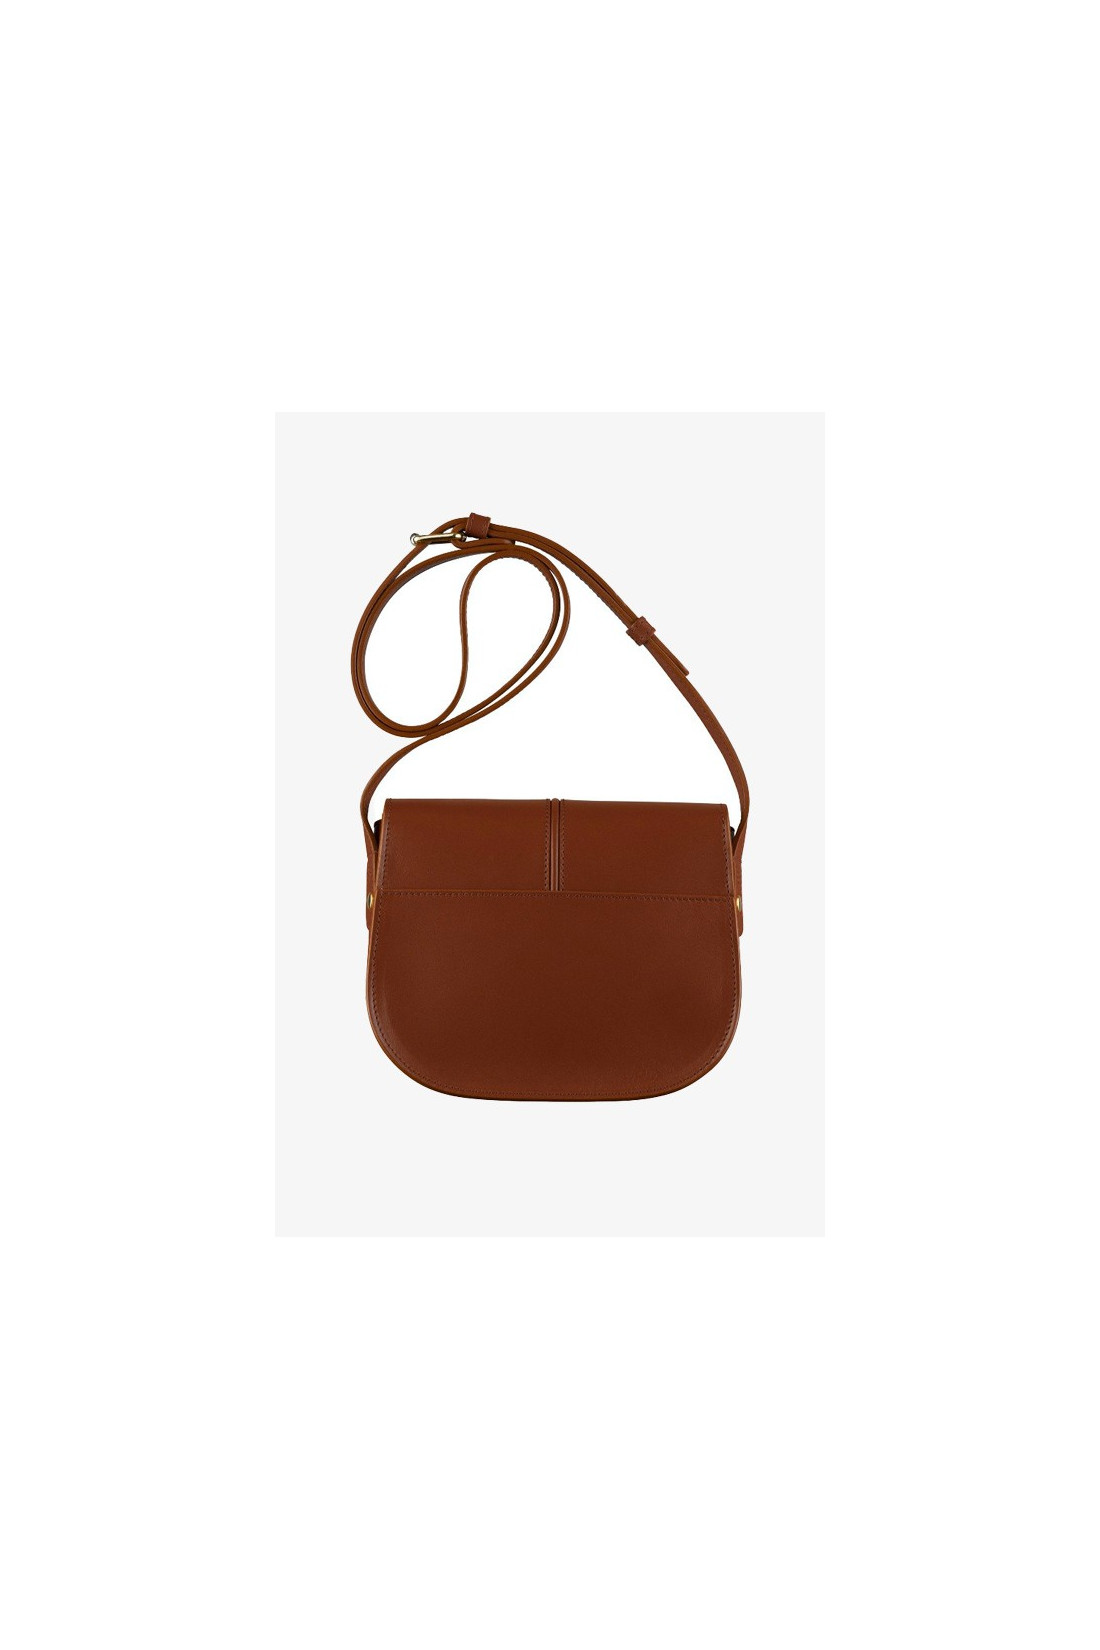 A.P.C. FOR WOMAN / Sac betty Noisette